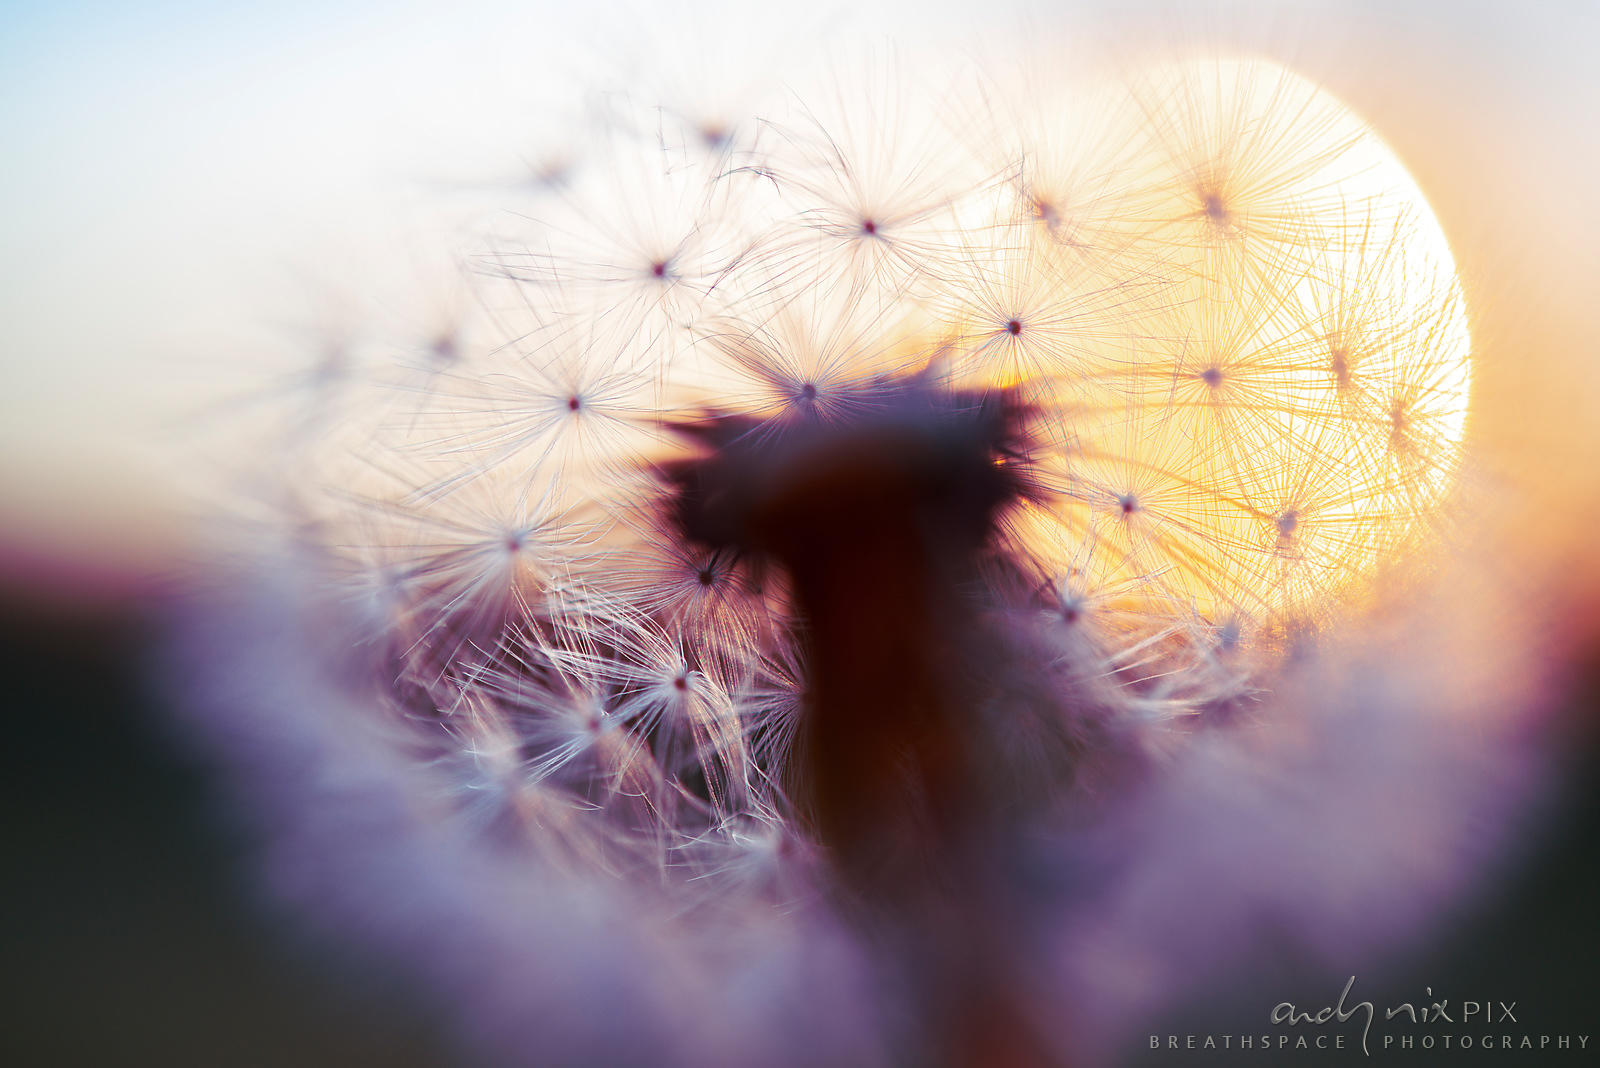 Wall Art Decor Photo Print: A view of the sunrise from inside a dandelion I